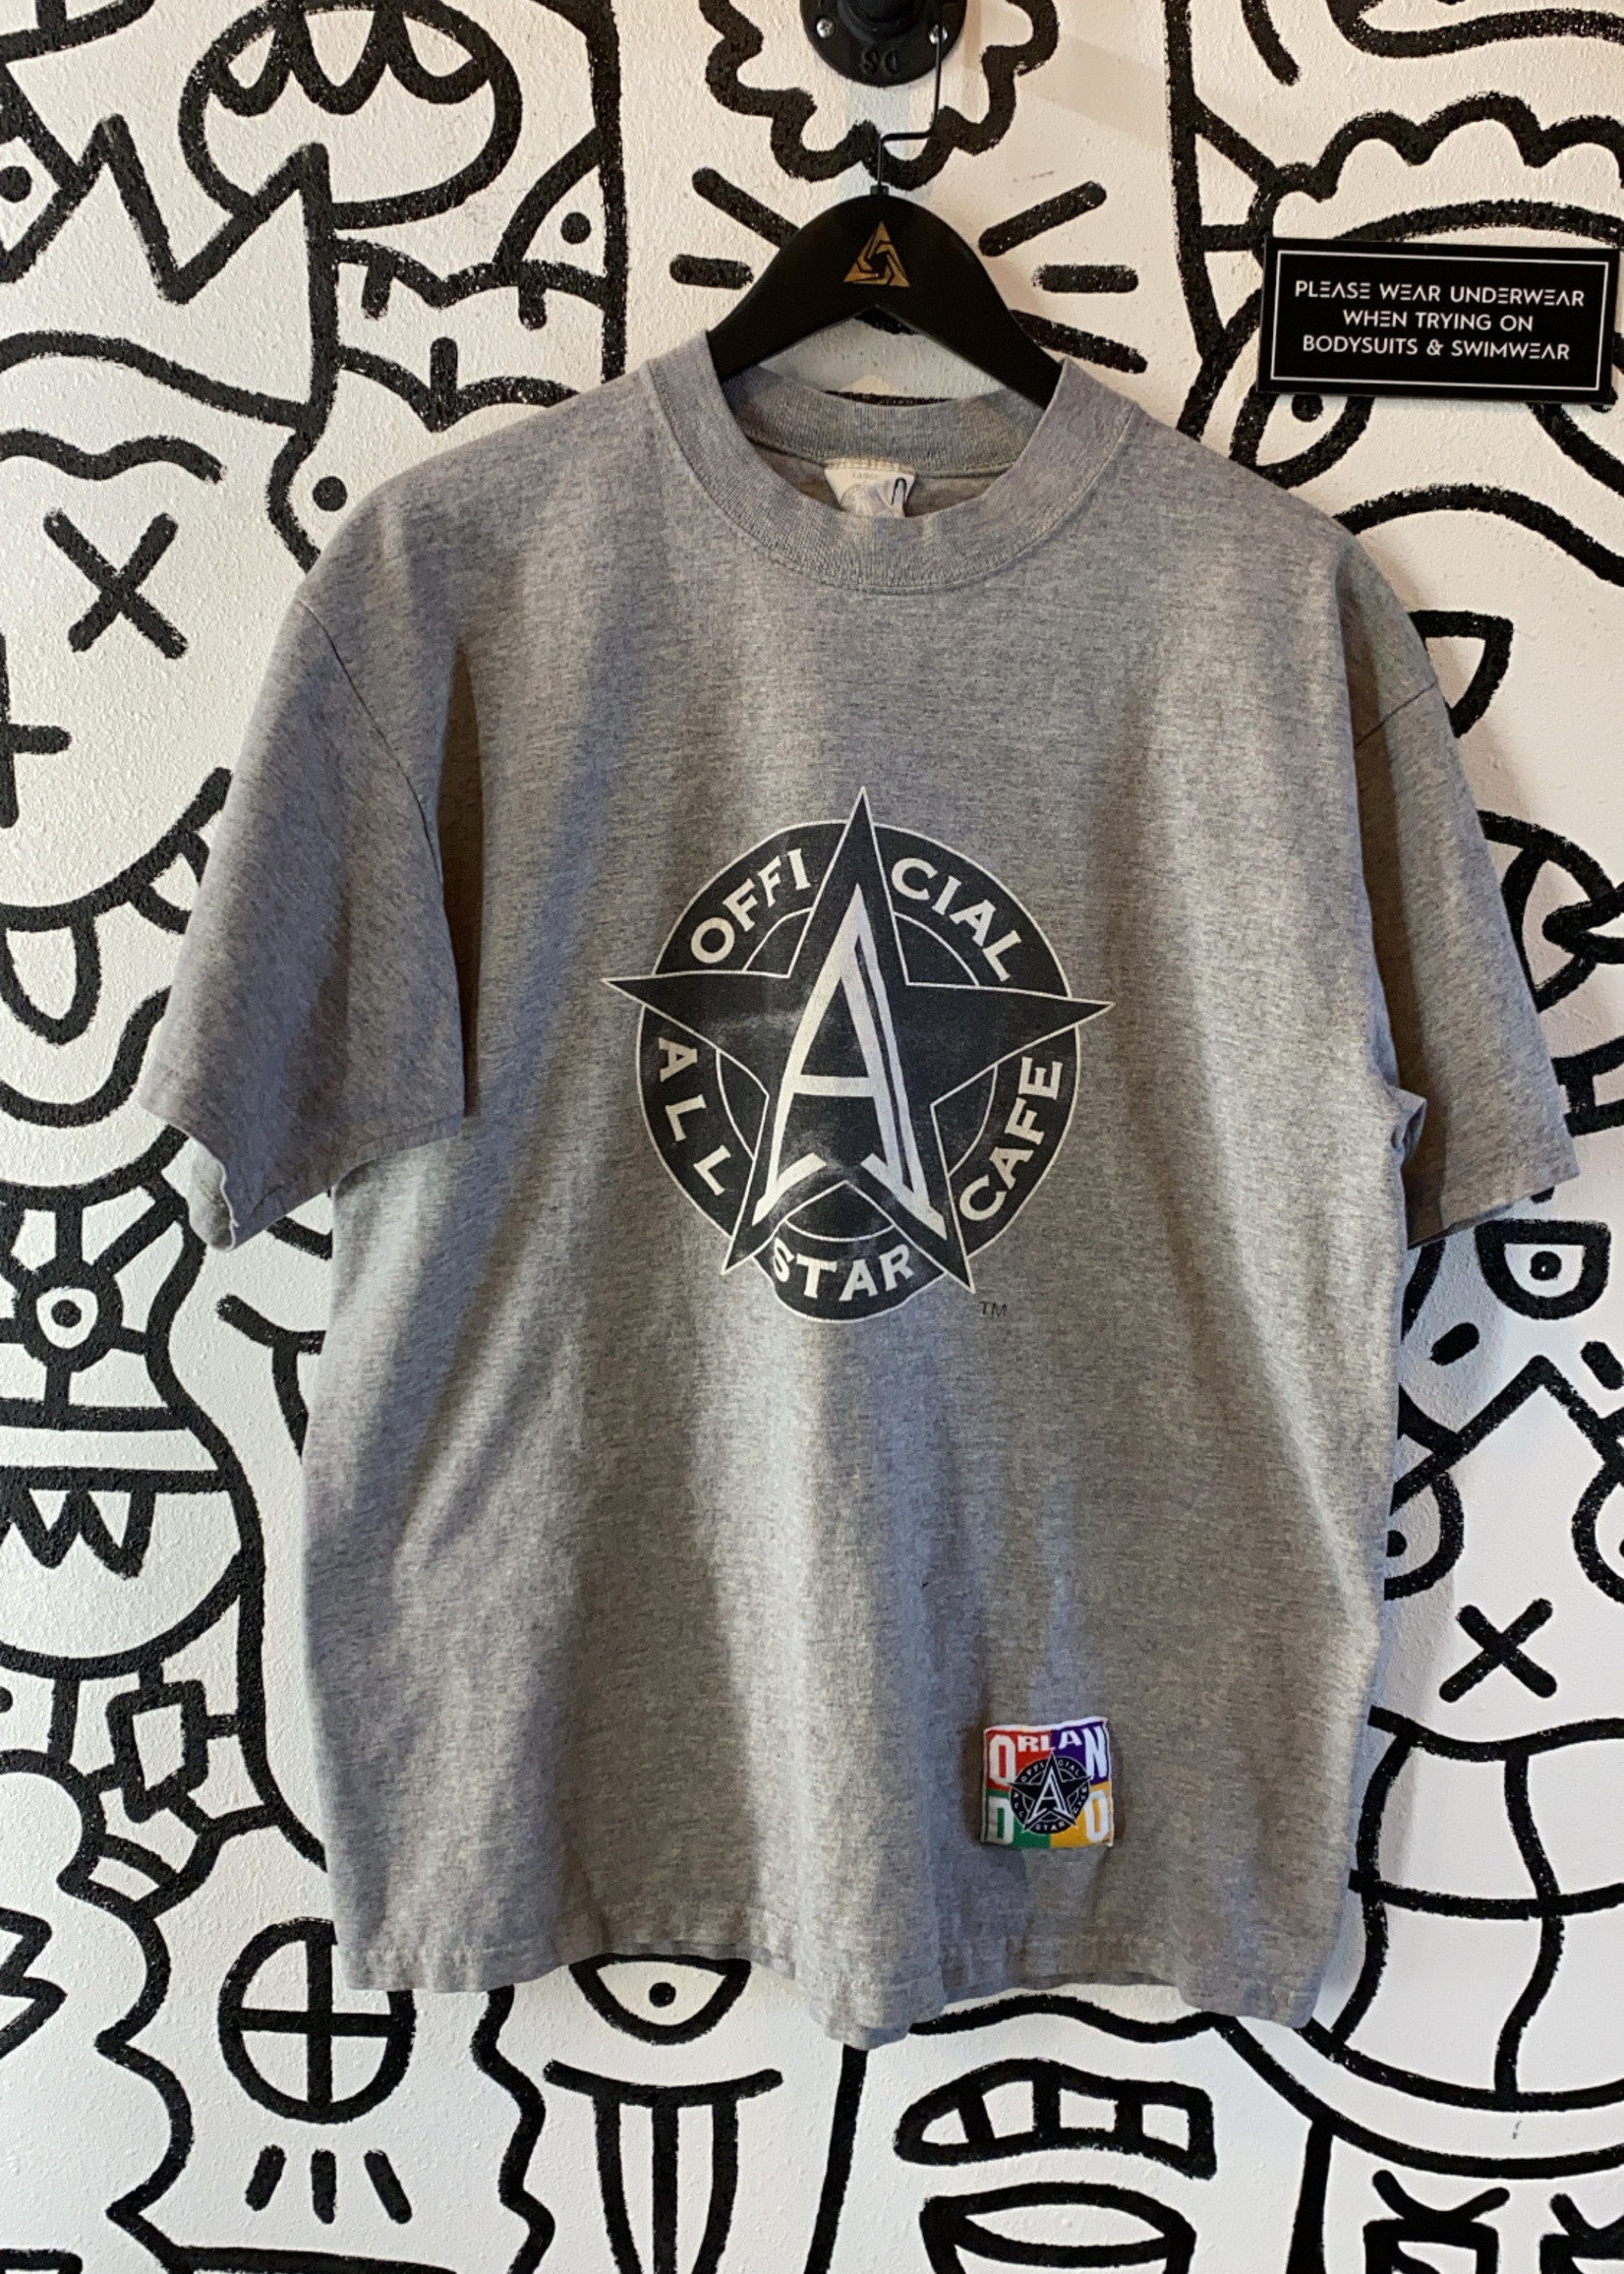 Official All Star Cafe Grey Shirt L